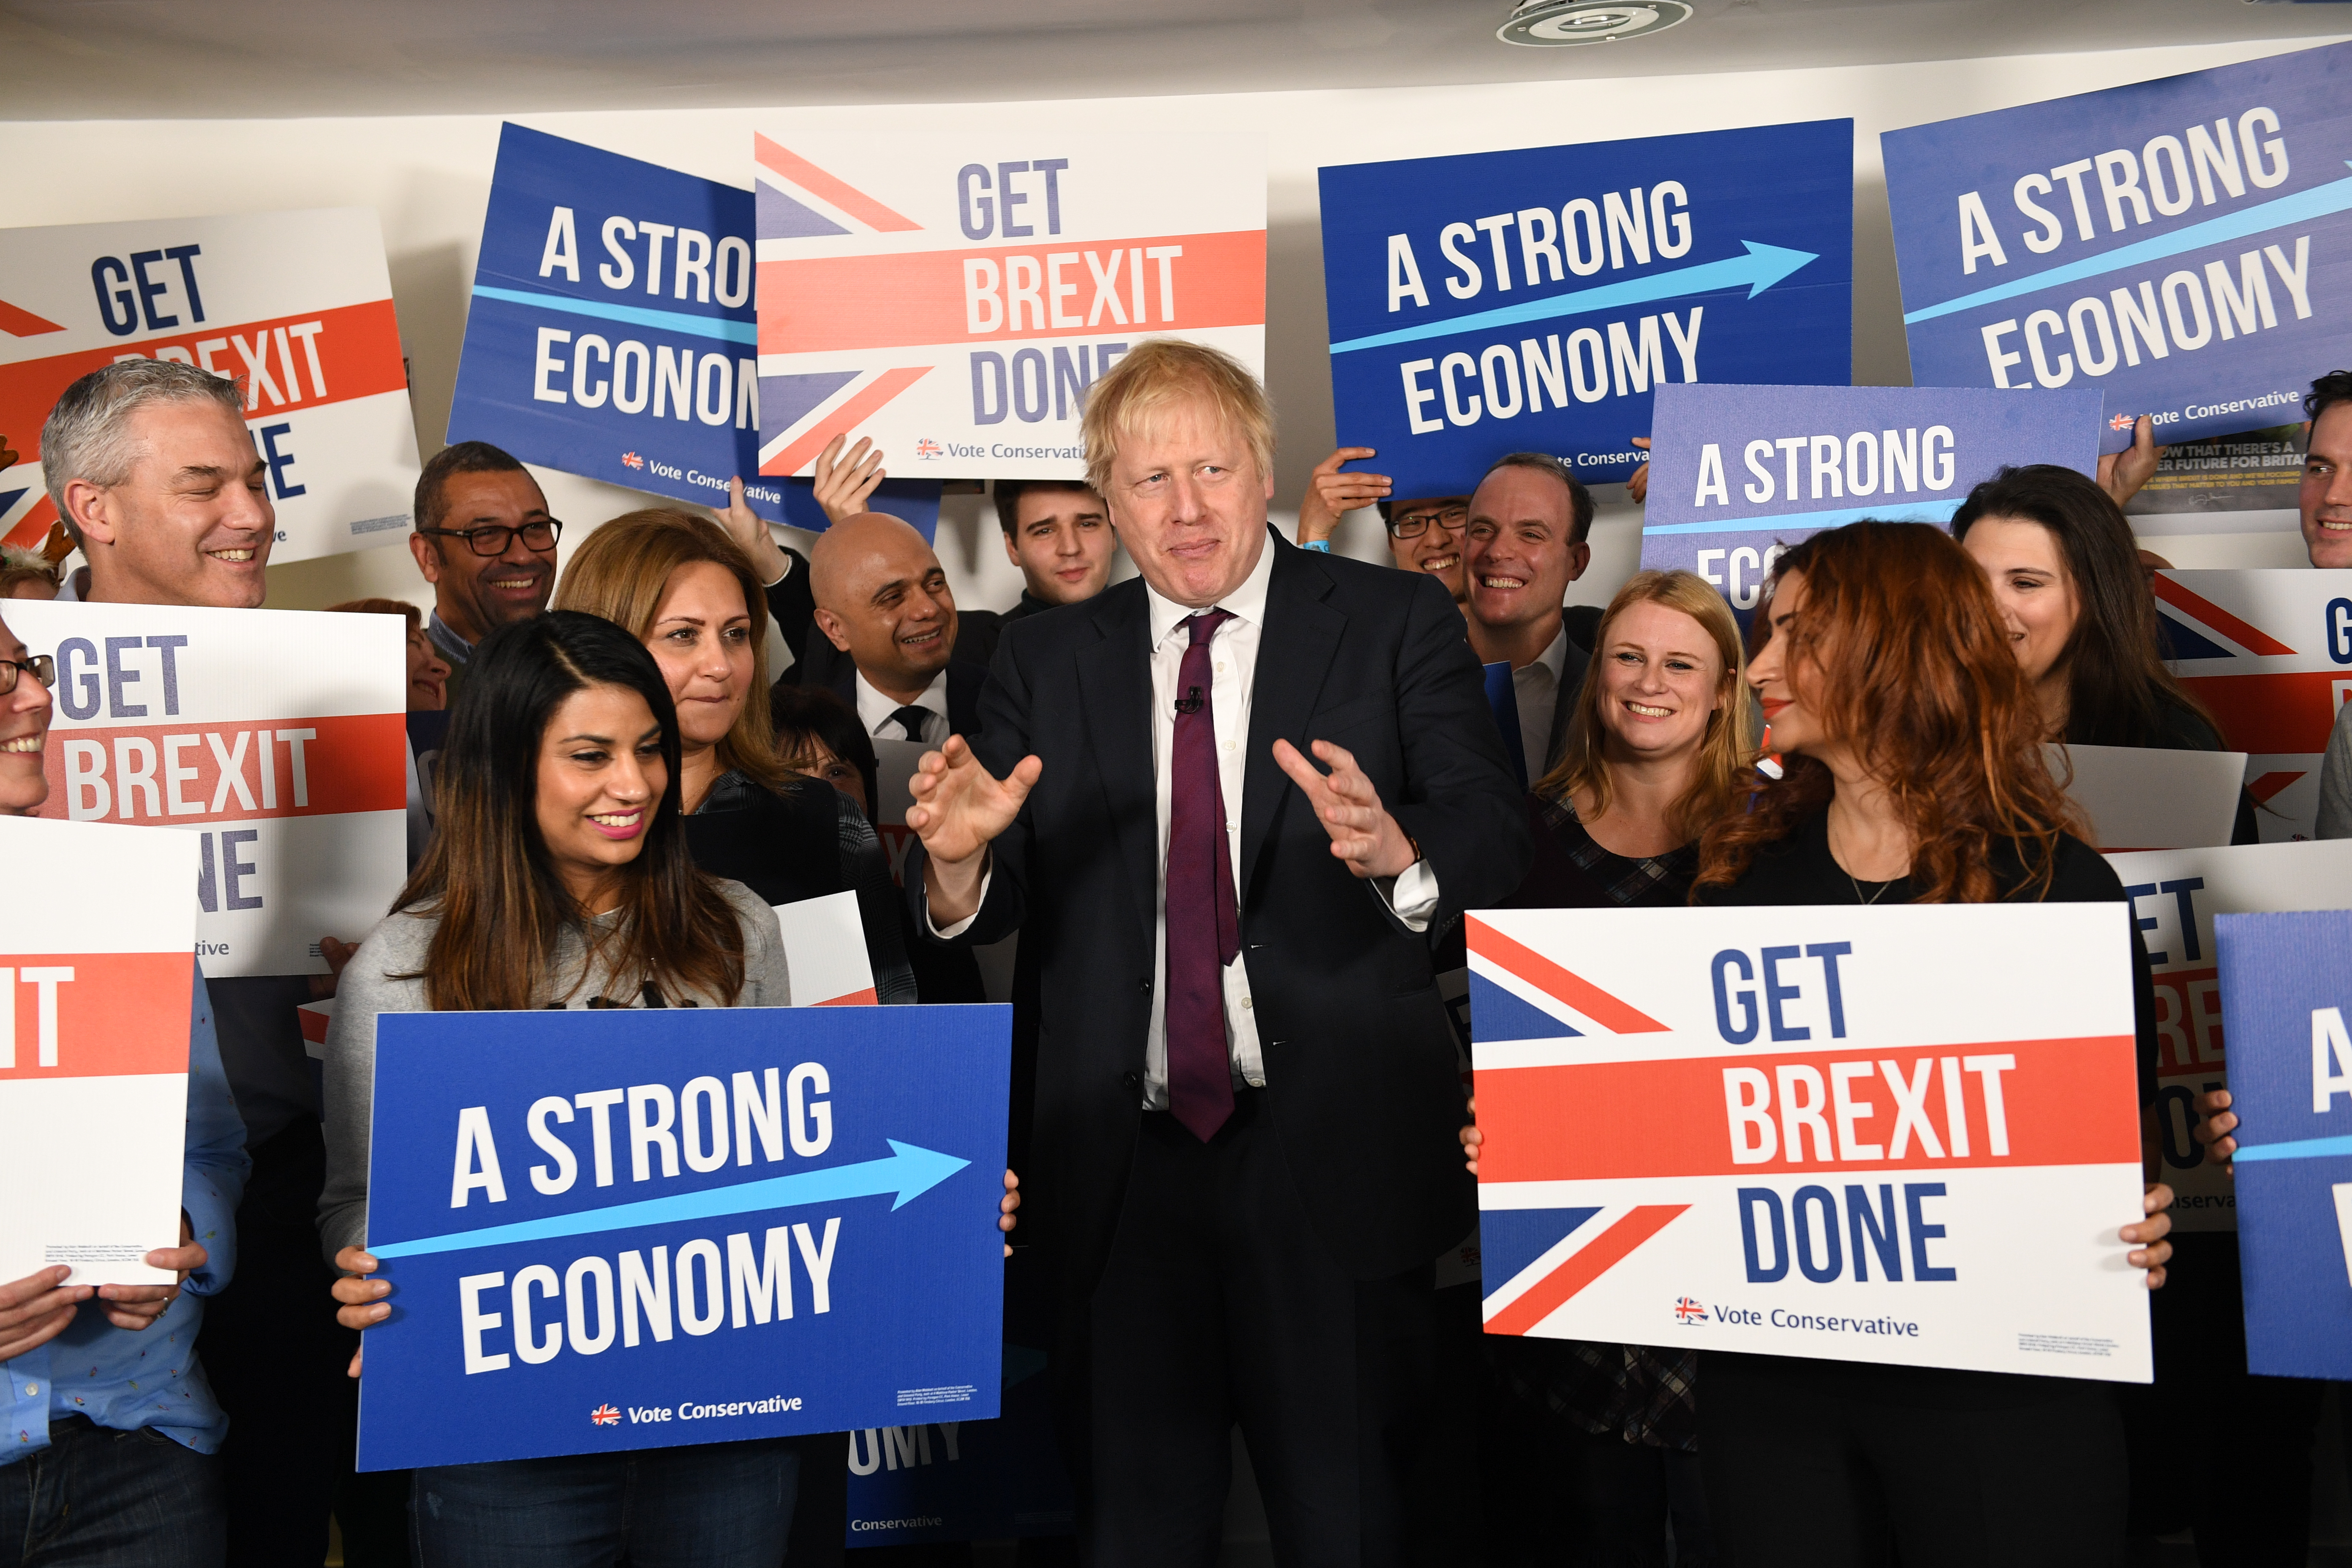 Prime Minister Boris Johnson at Conservative Campaign Headquarters Call Centre, London, while on the election campaign trail.